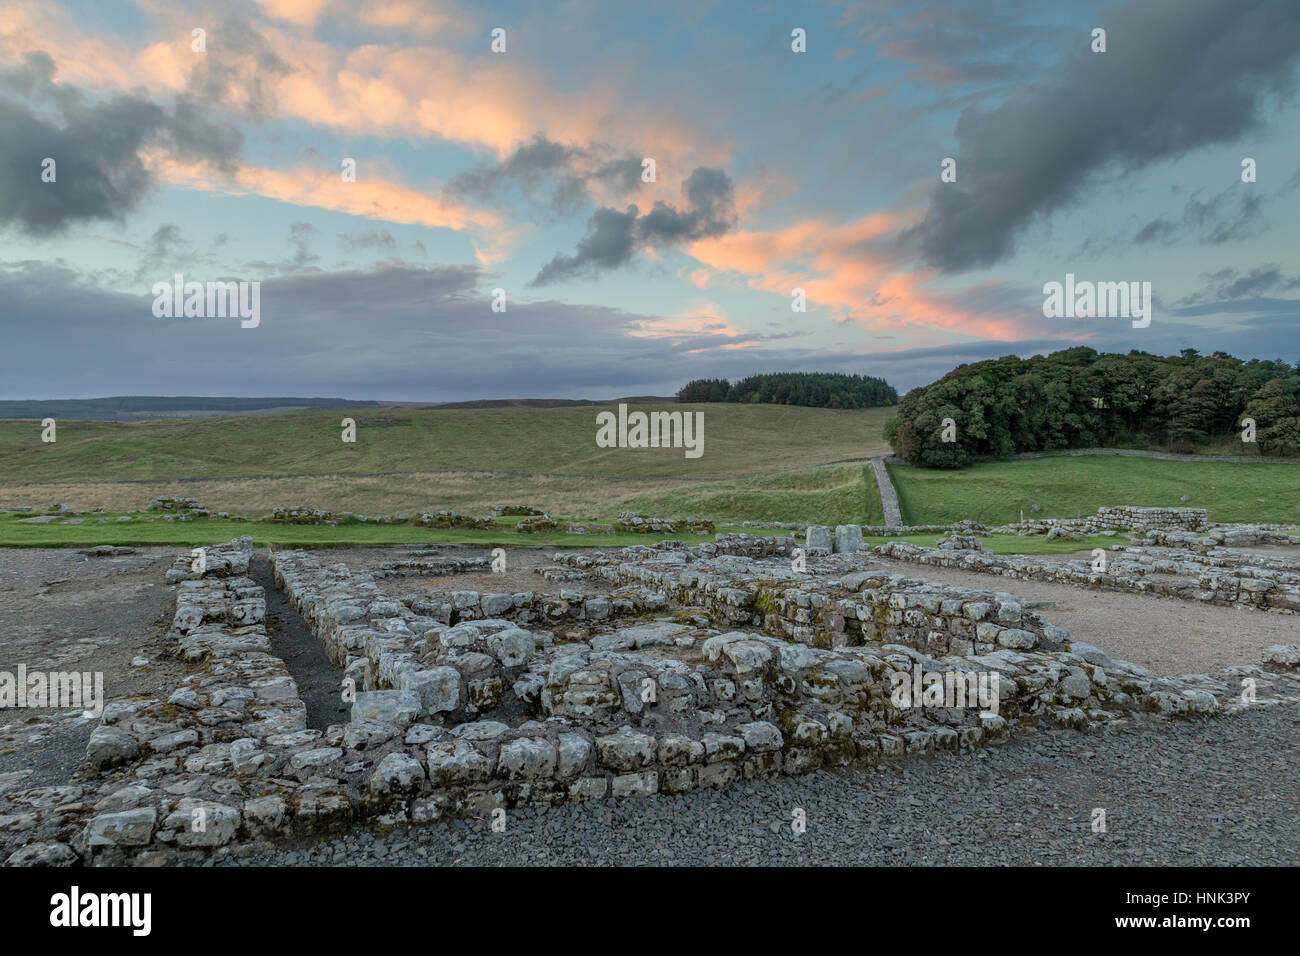 Hadrian's Wall, Housesteads Roman Fort: the view across the remains of a Barrack building (Barrack 13) looking - Stock Image